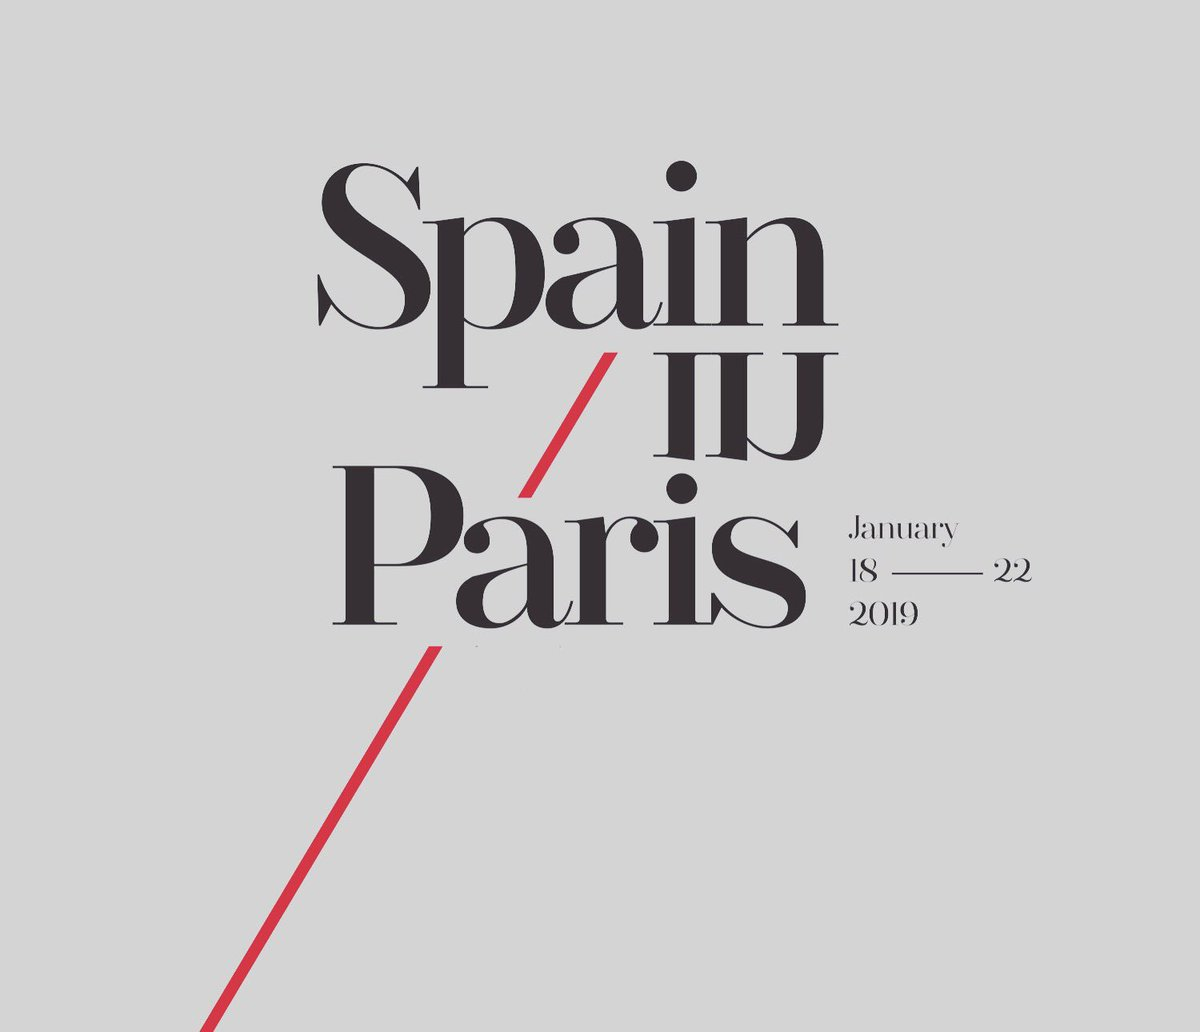 Interiors From Spain On Twitter More Than 120 Spanish Companies